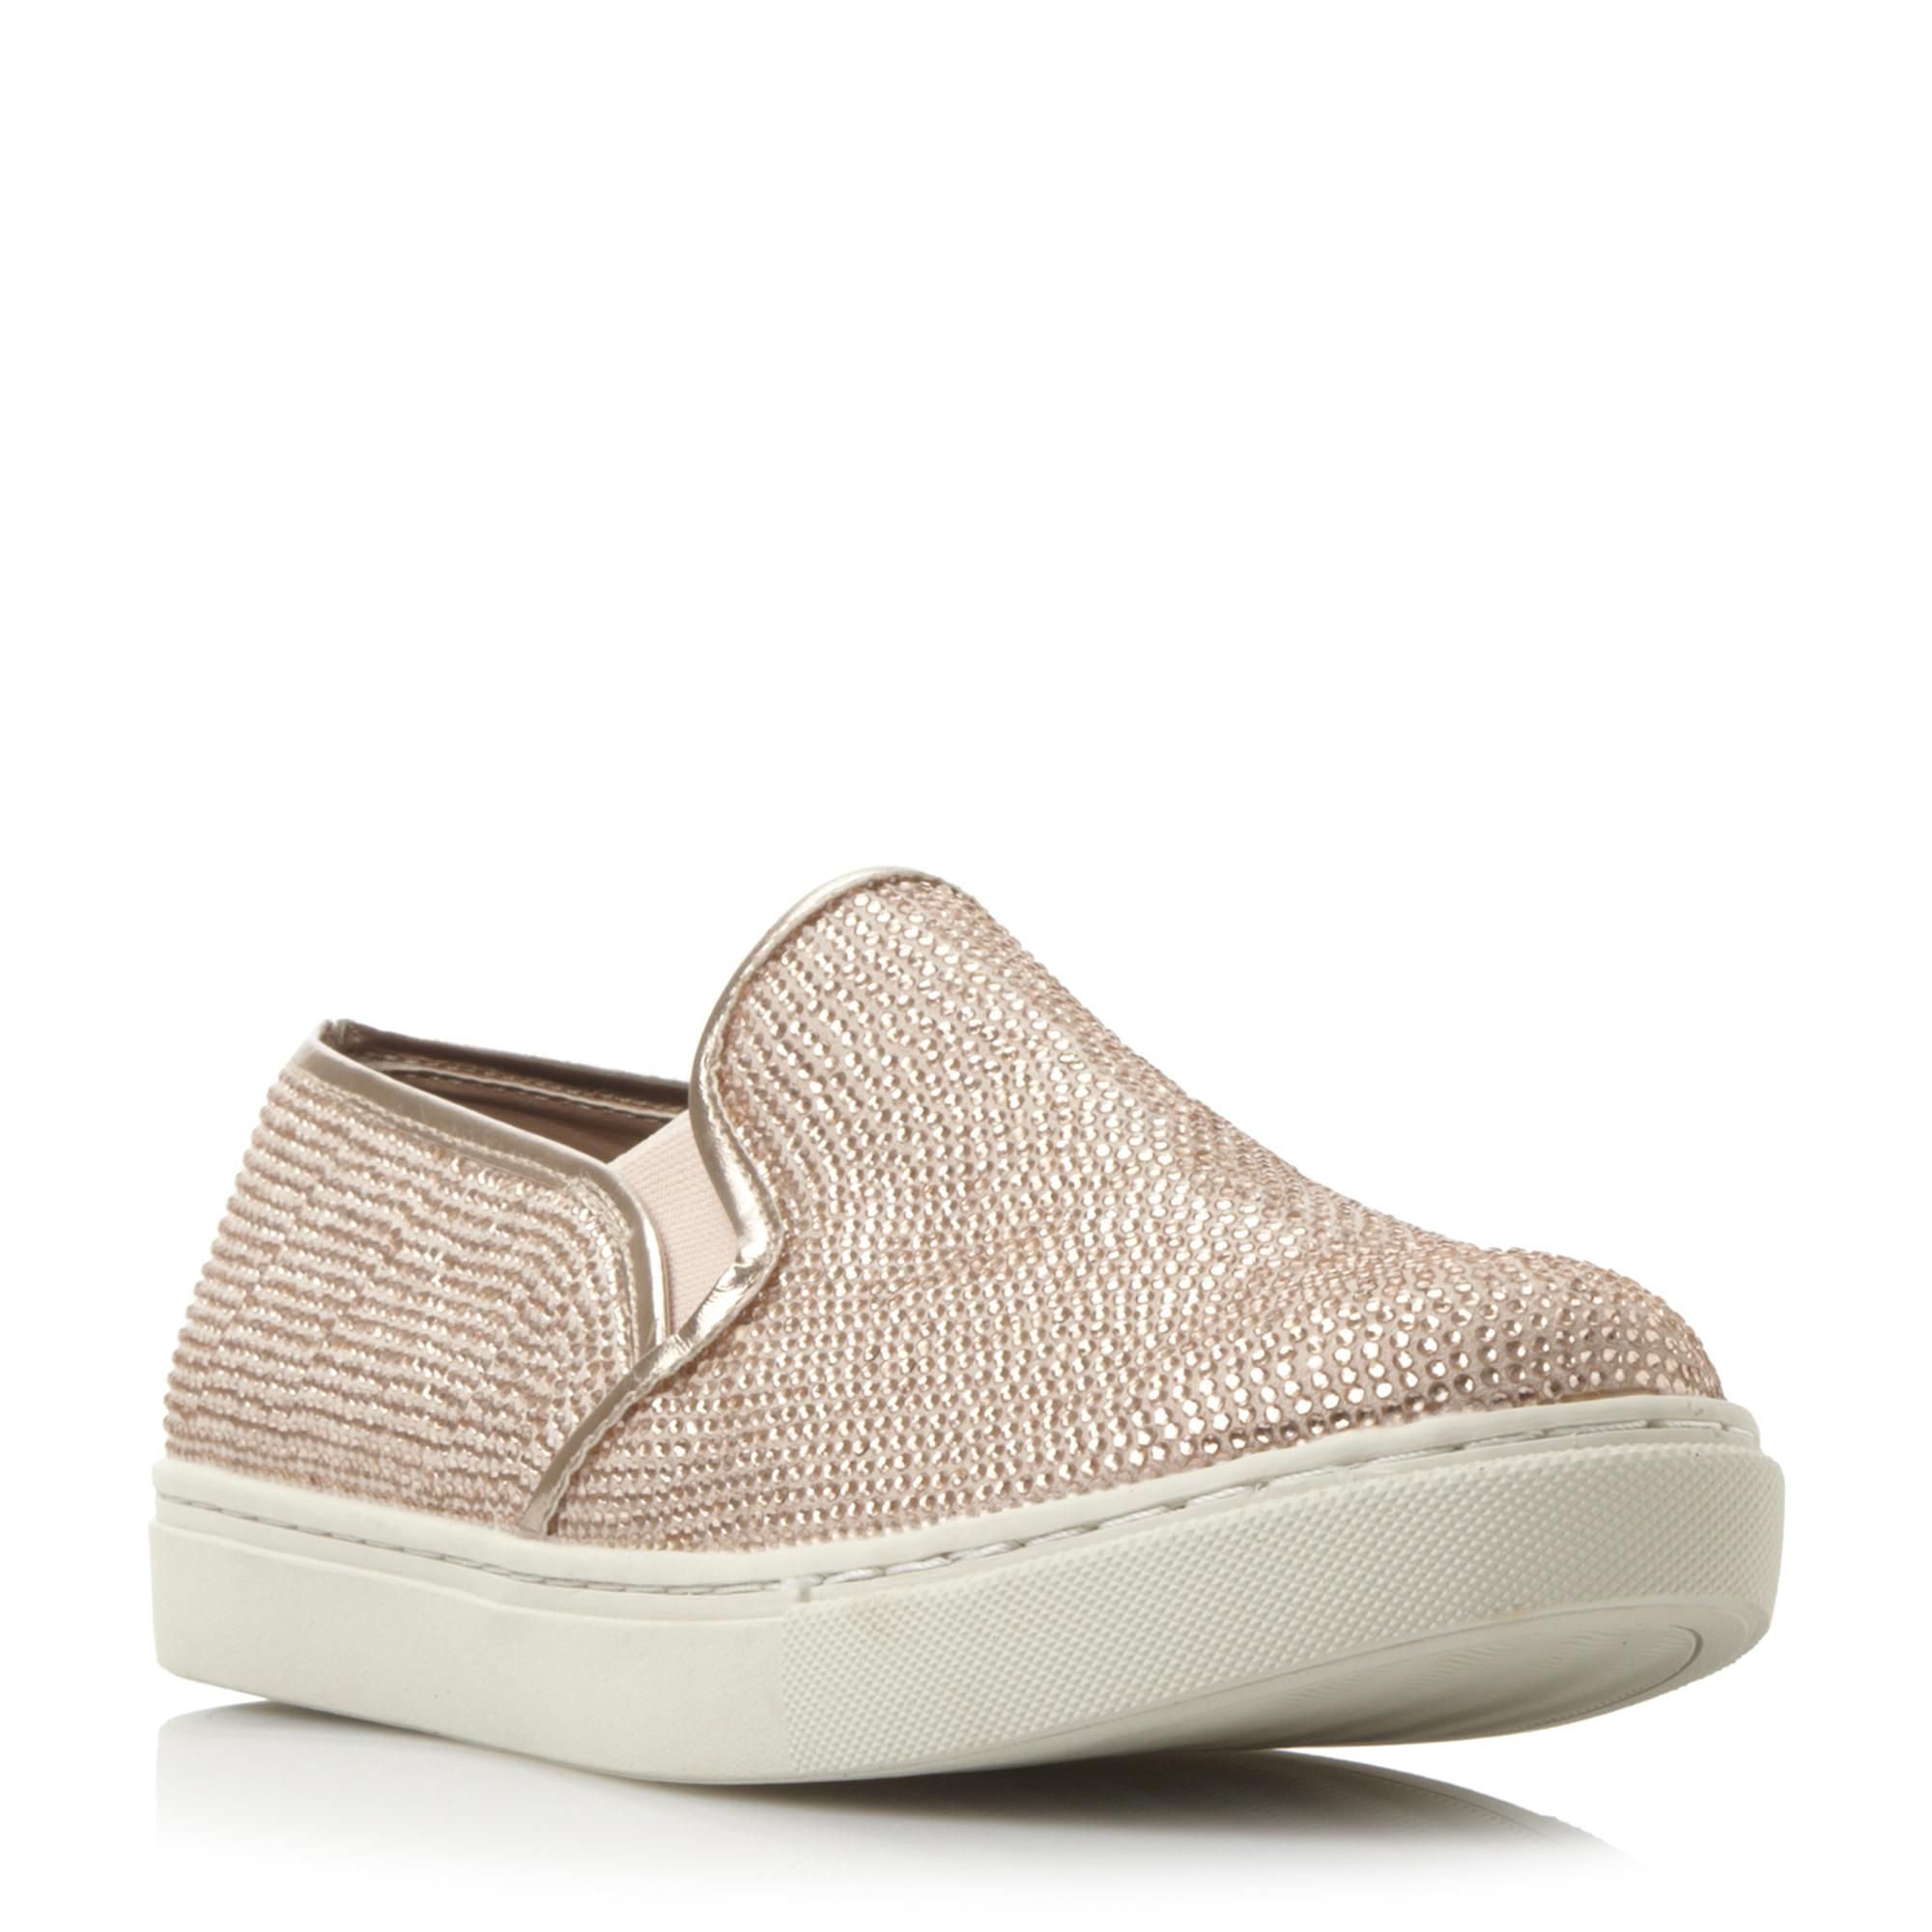 STEVE MADDEN EXSESS SM - Rhinestone Embellished Slip On Trainer - rose gold  | Dune Shoes